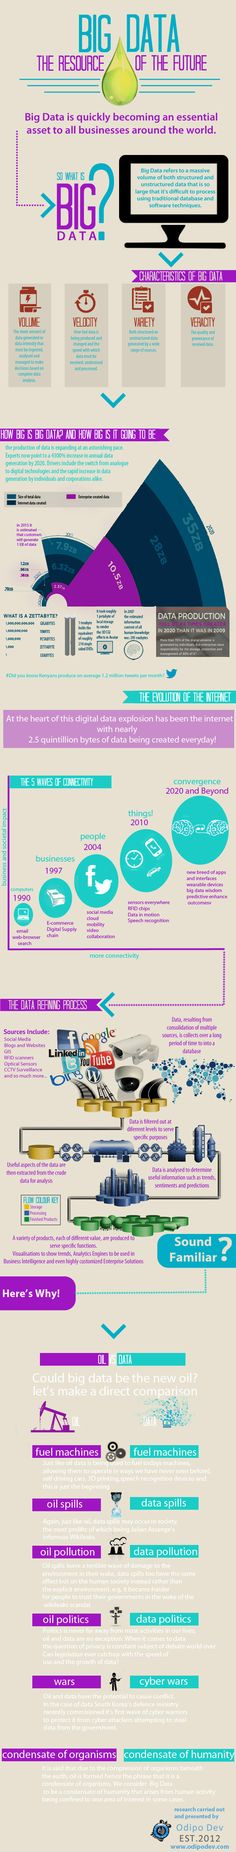 Big Data the resource of the future #infografia #infographic #internet